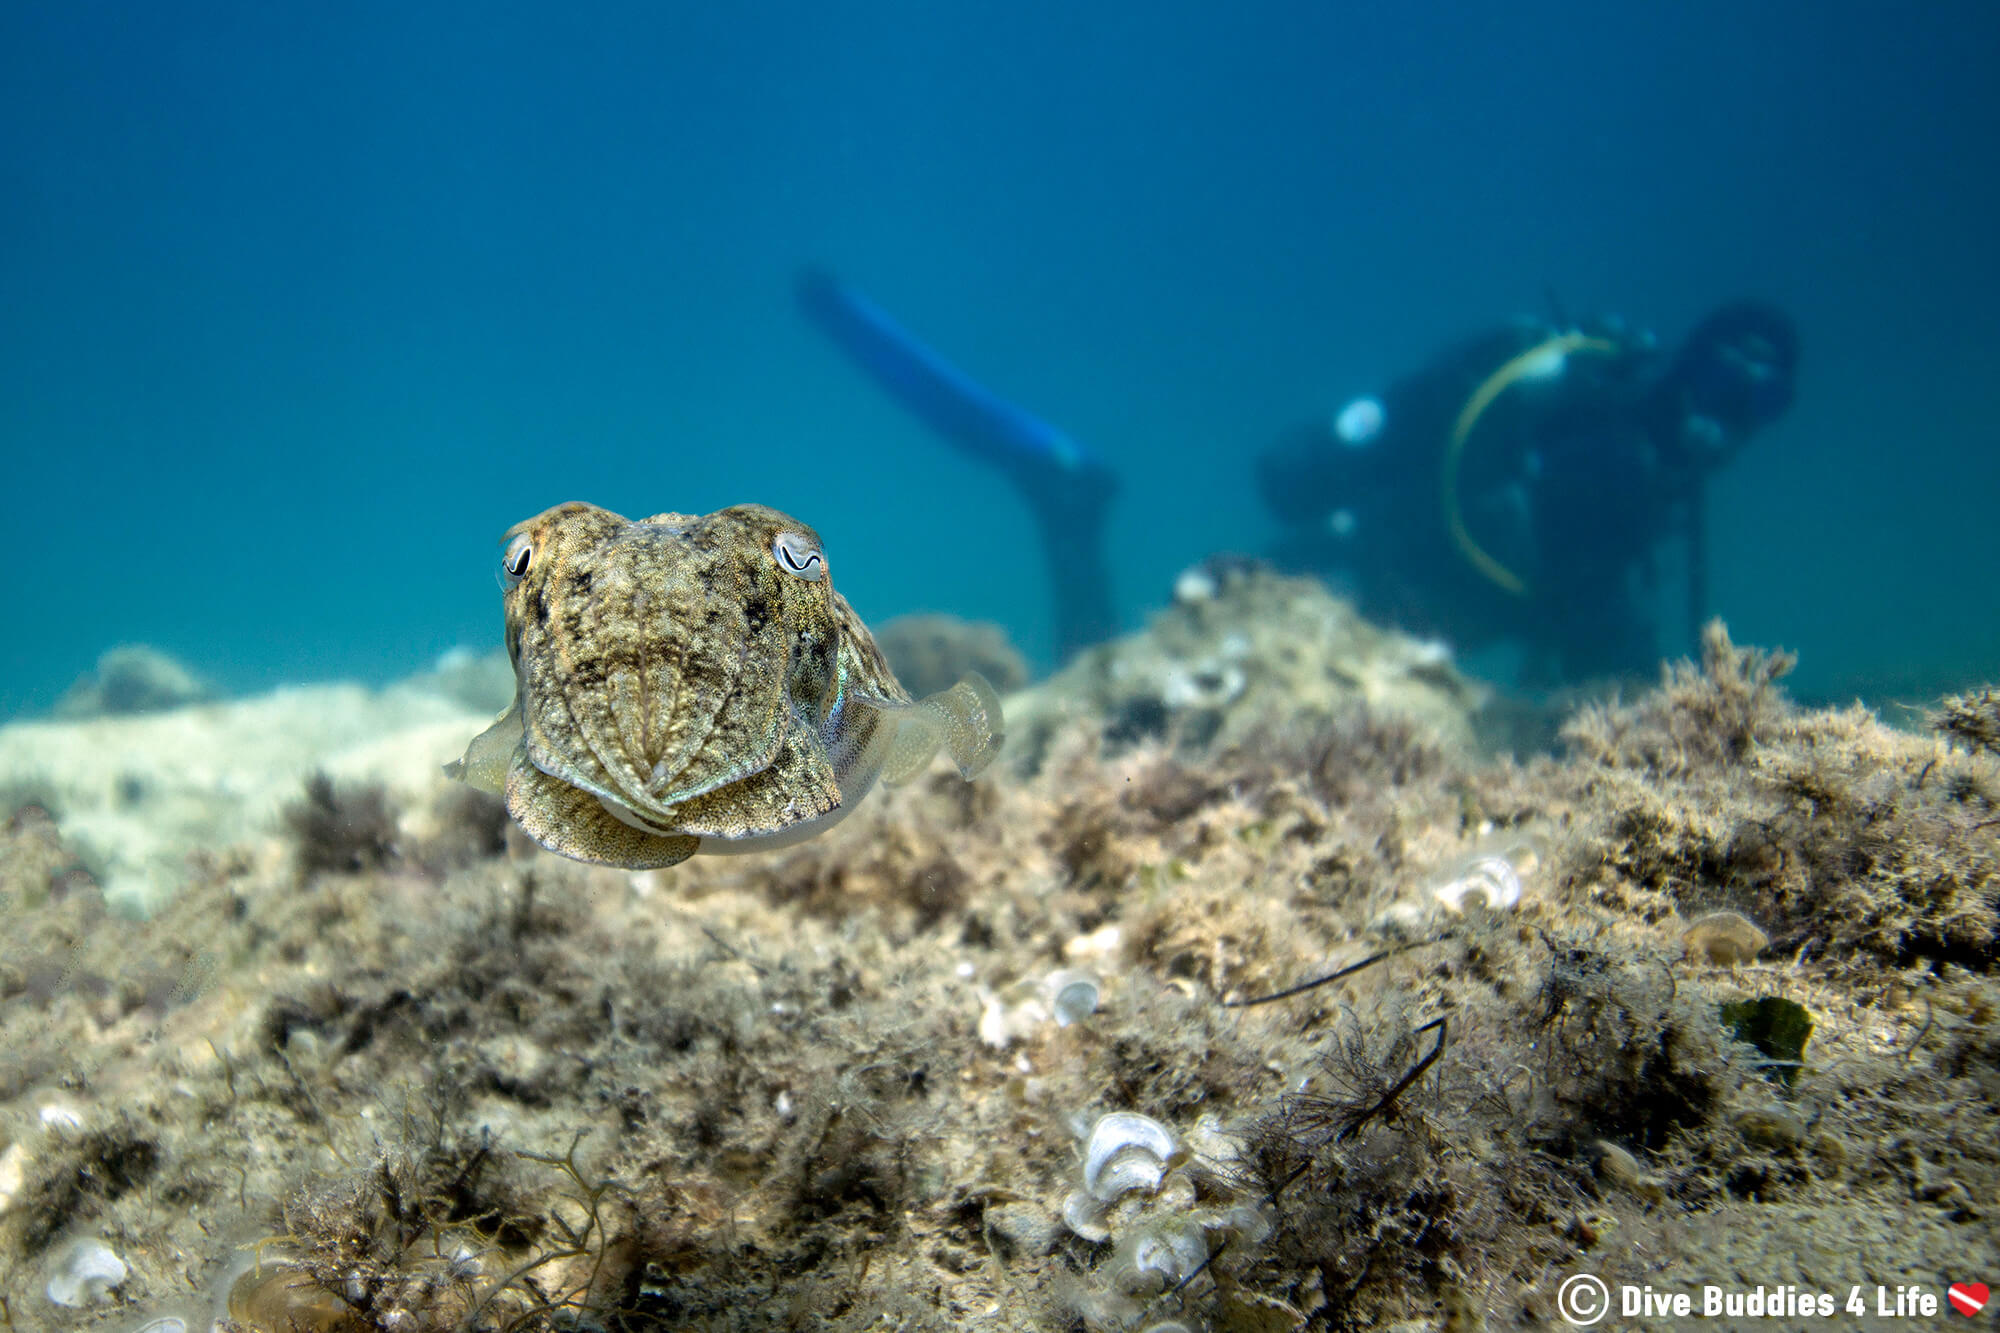 A Camouflaged Cuttlefish And A Scuba Diver In Slovenia, Europe